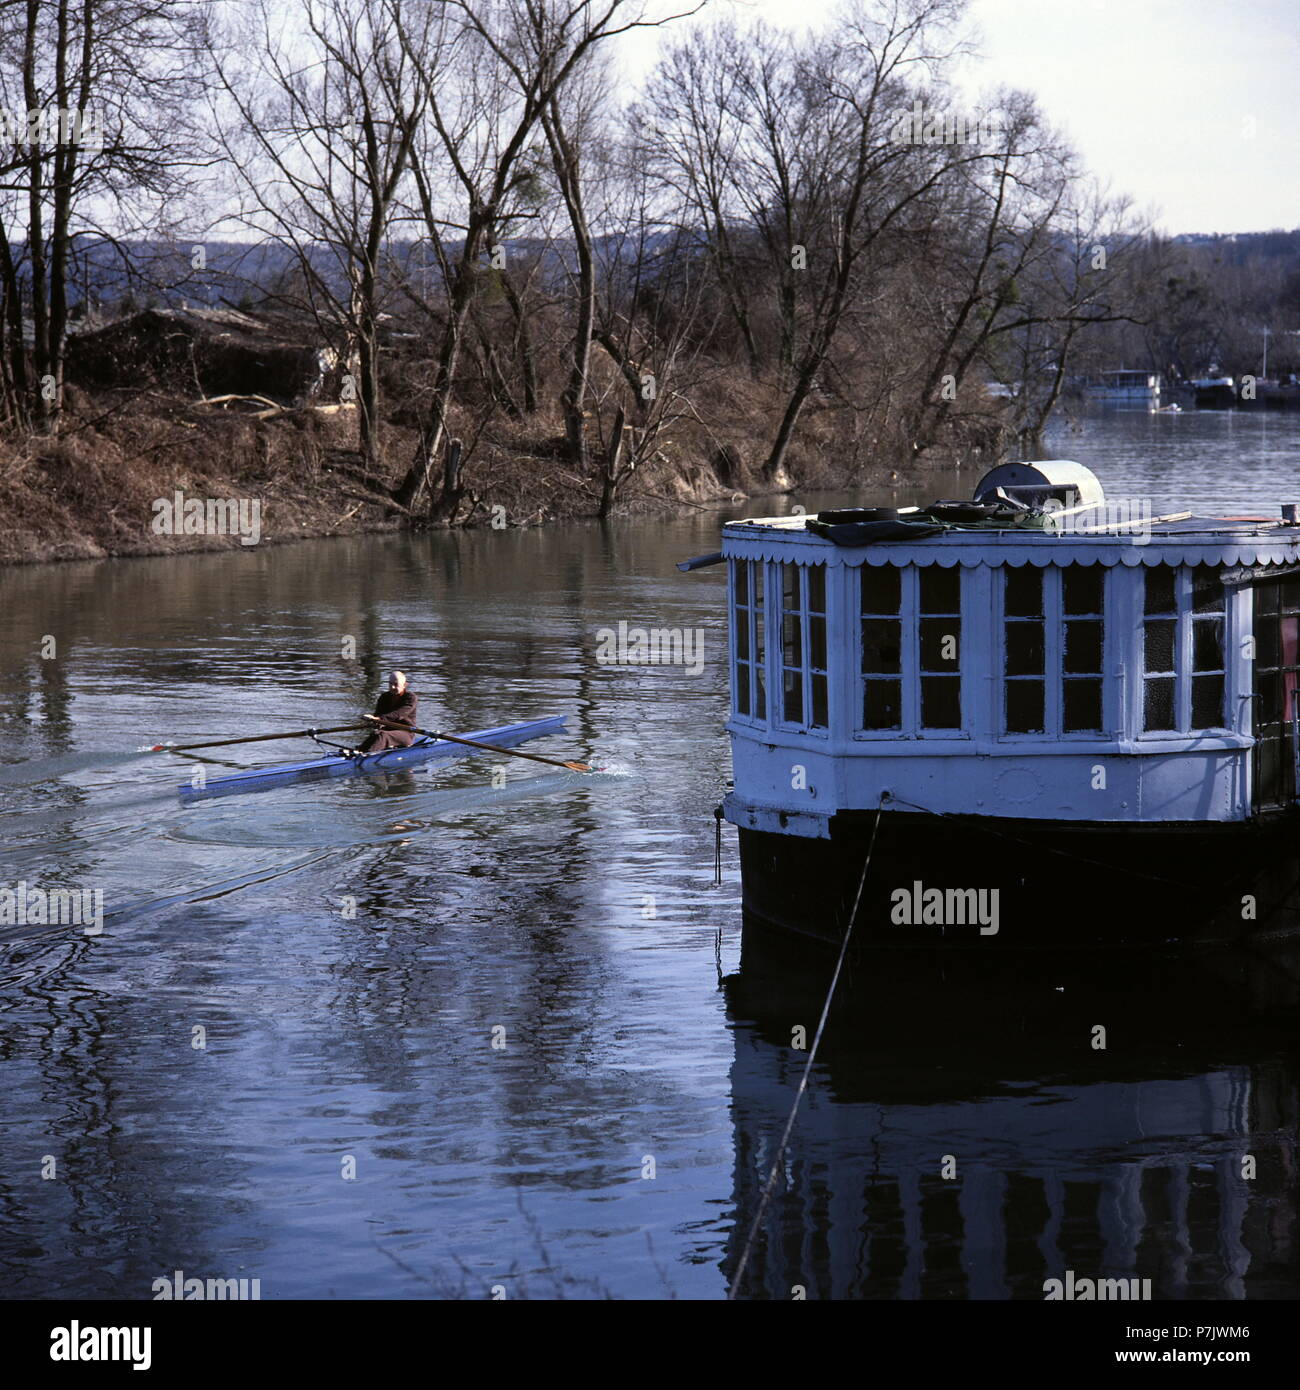 AJAXNETPHOTO. LE PORT MARLY, FRANCE. - RIVER SEINE - A ONE-MAN SCULL HEADS UPSTREAM PAST OLD HOUSEBOATS MOORED ON THE RIVERSIDE. 19TH CENTURY IMPRESSIONIST ARTISTS ALFRED SISLEY AND CAMILLE PISSARRO BOTH MADE STUDIES OF RIVER LIFE NEAR HERE. PHOTO:JONATHAN EASTLAND/AJAX REF:50 - Stock Image